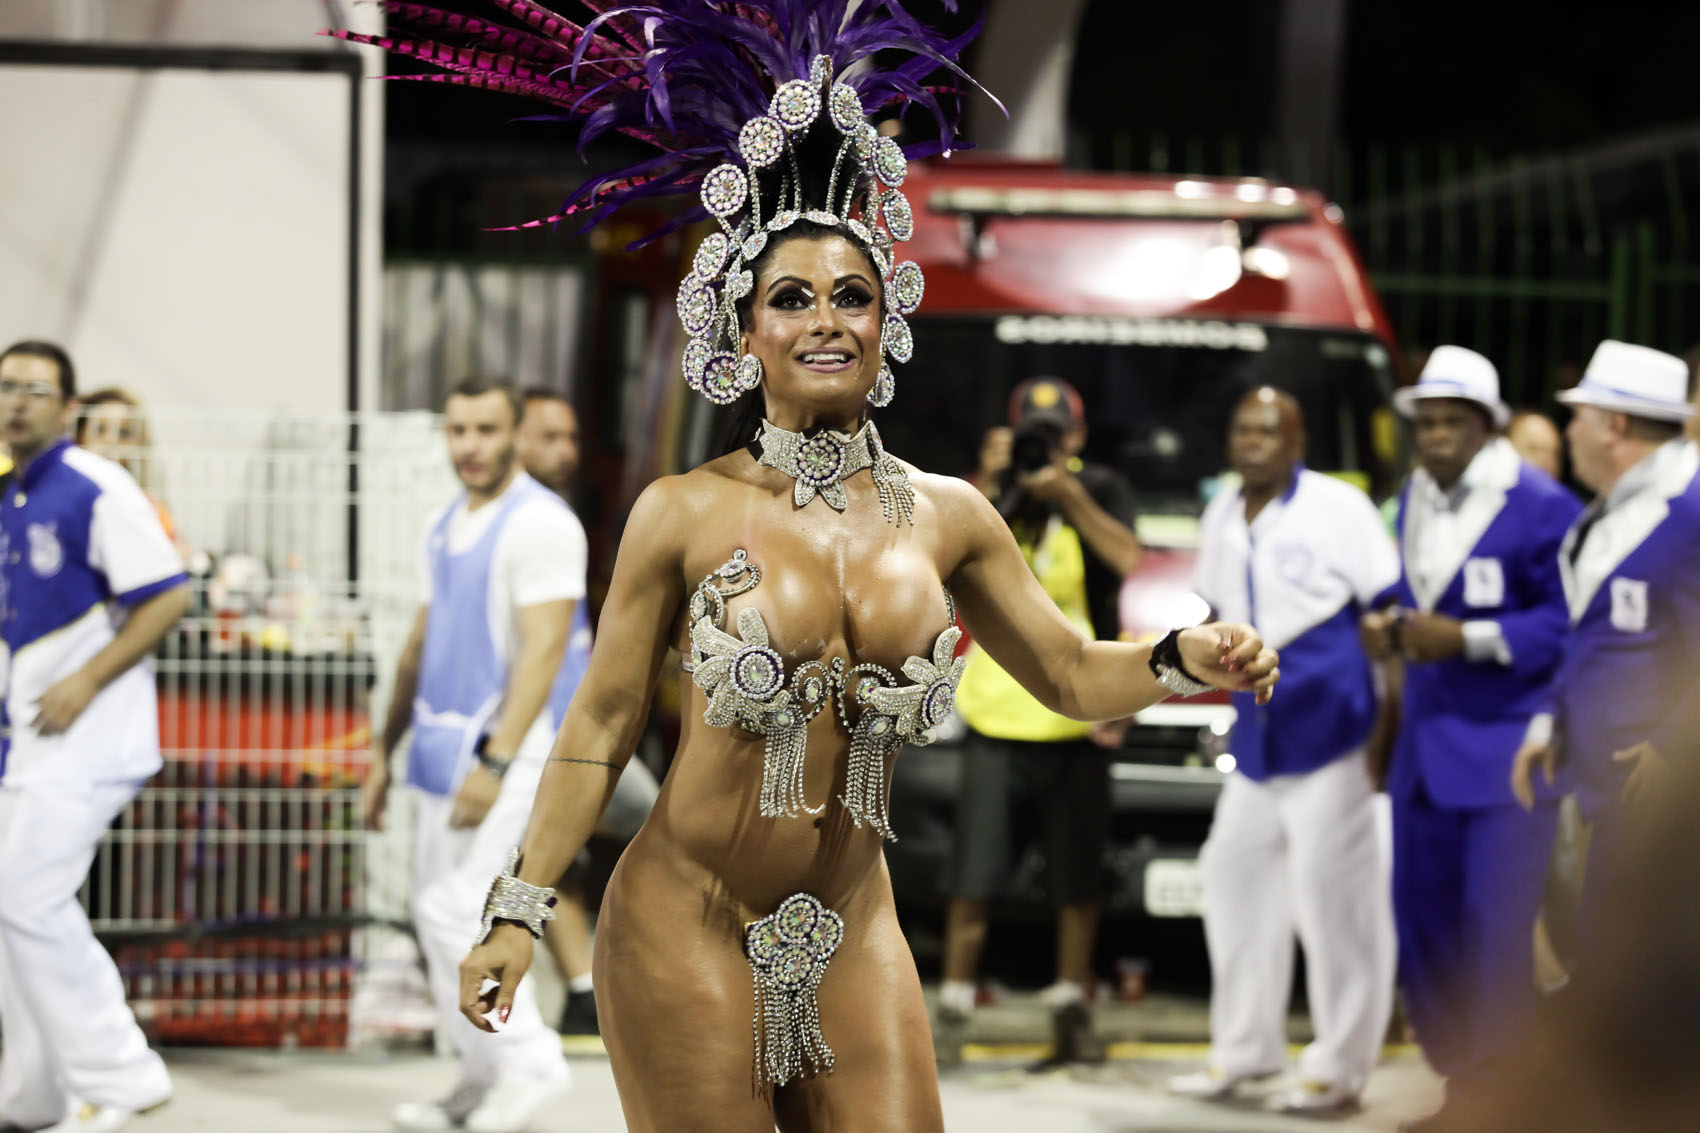 Fotos Proibidas Do Carnaval